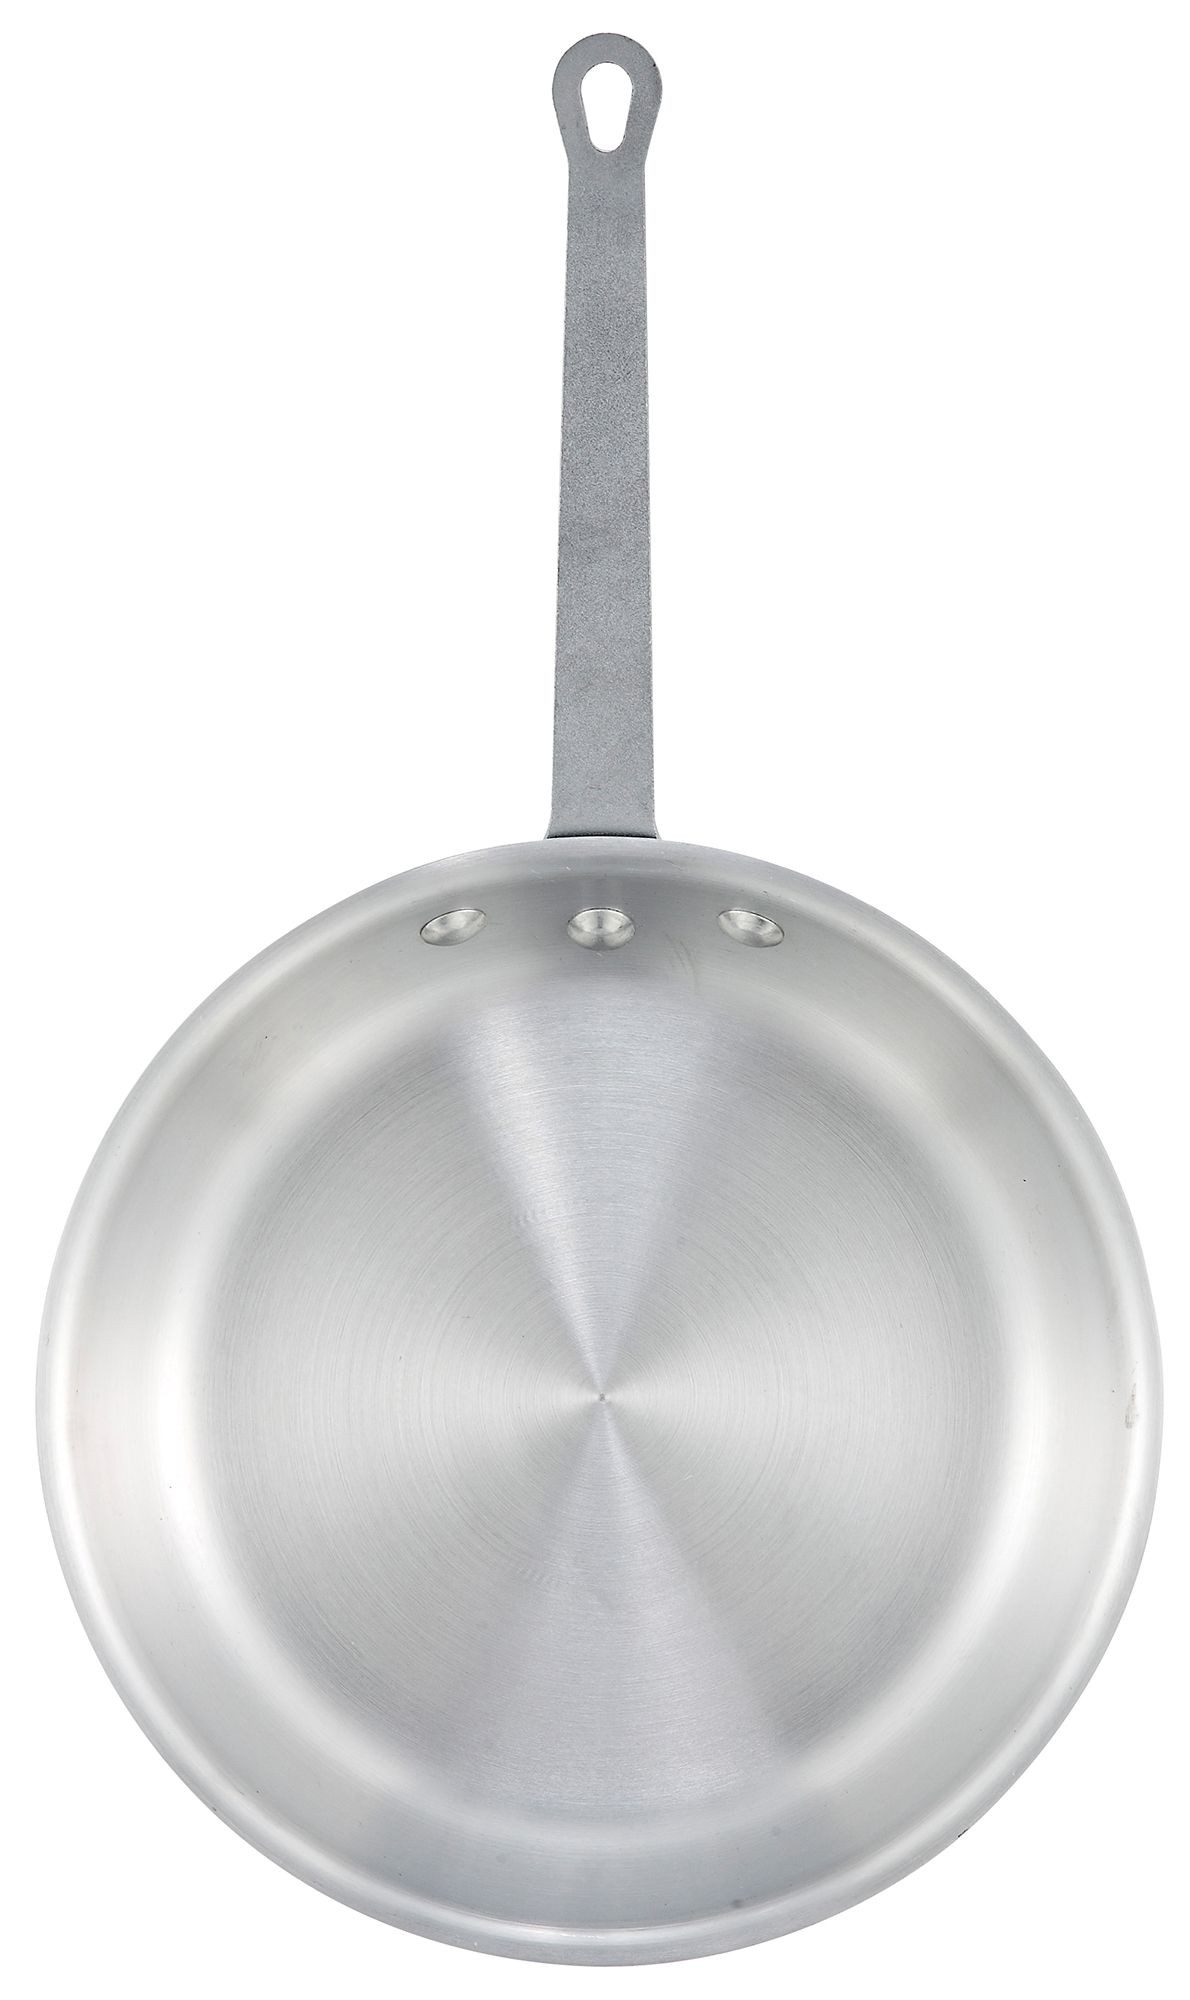 "Winco afp-14a 14"" Gladiator Aluminum Fry Pan with Natural Finish"